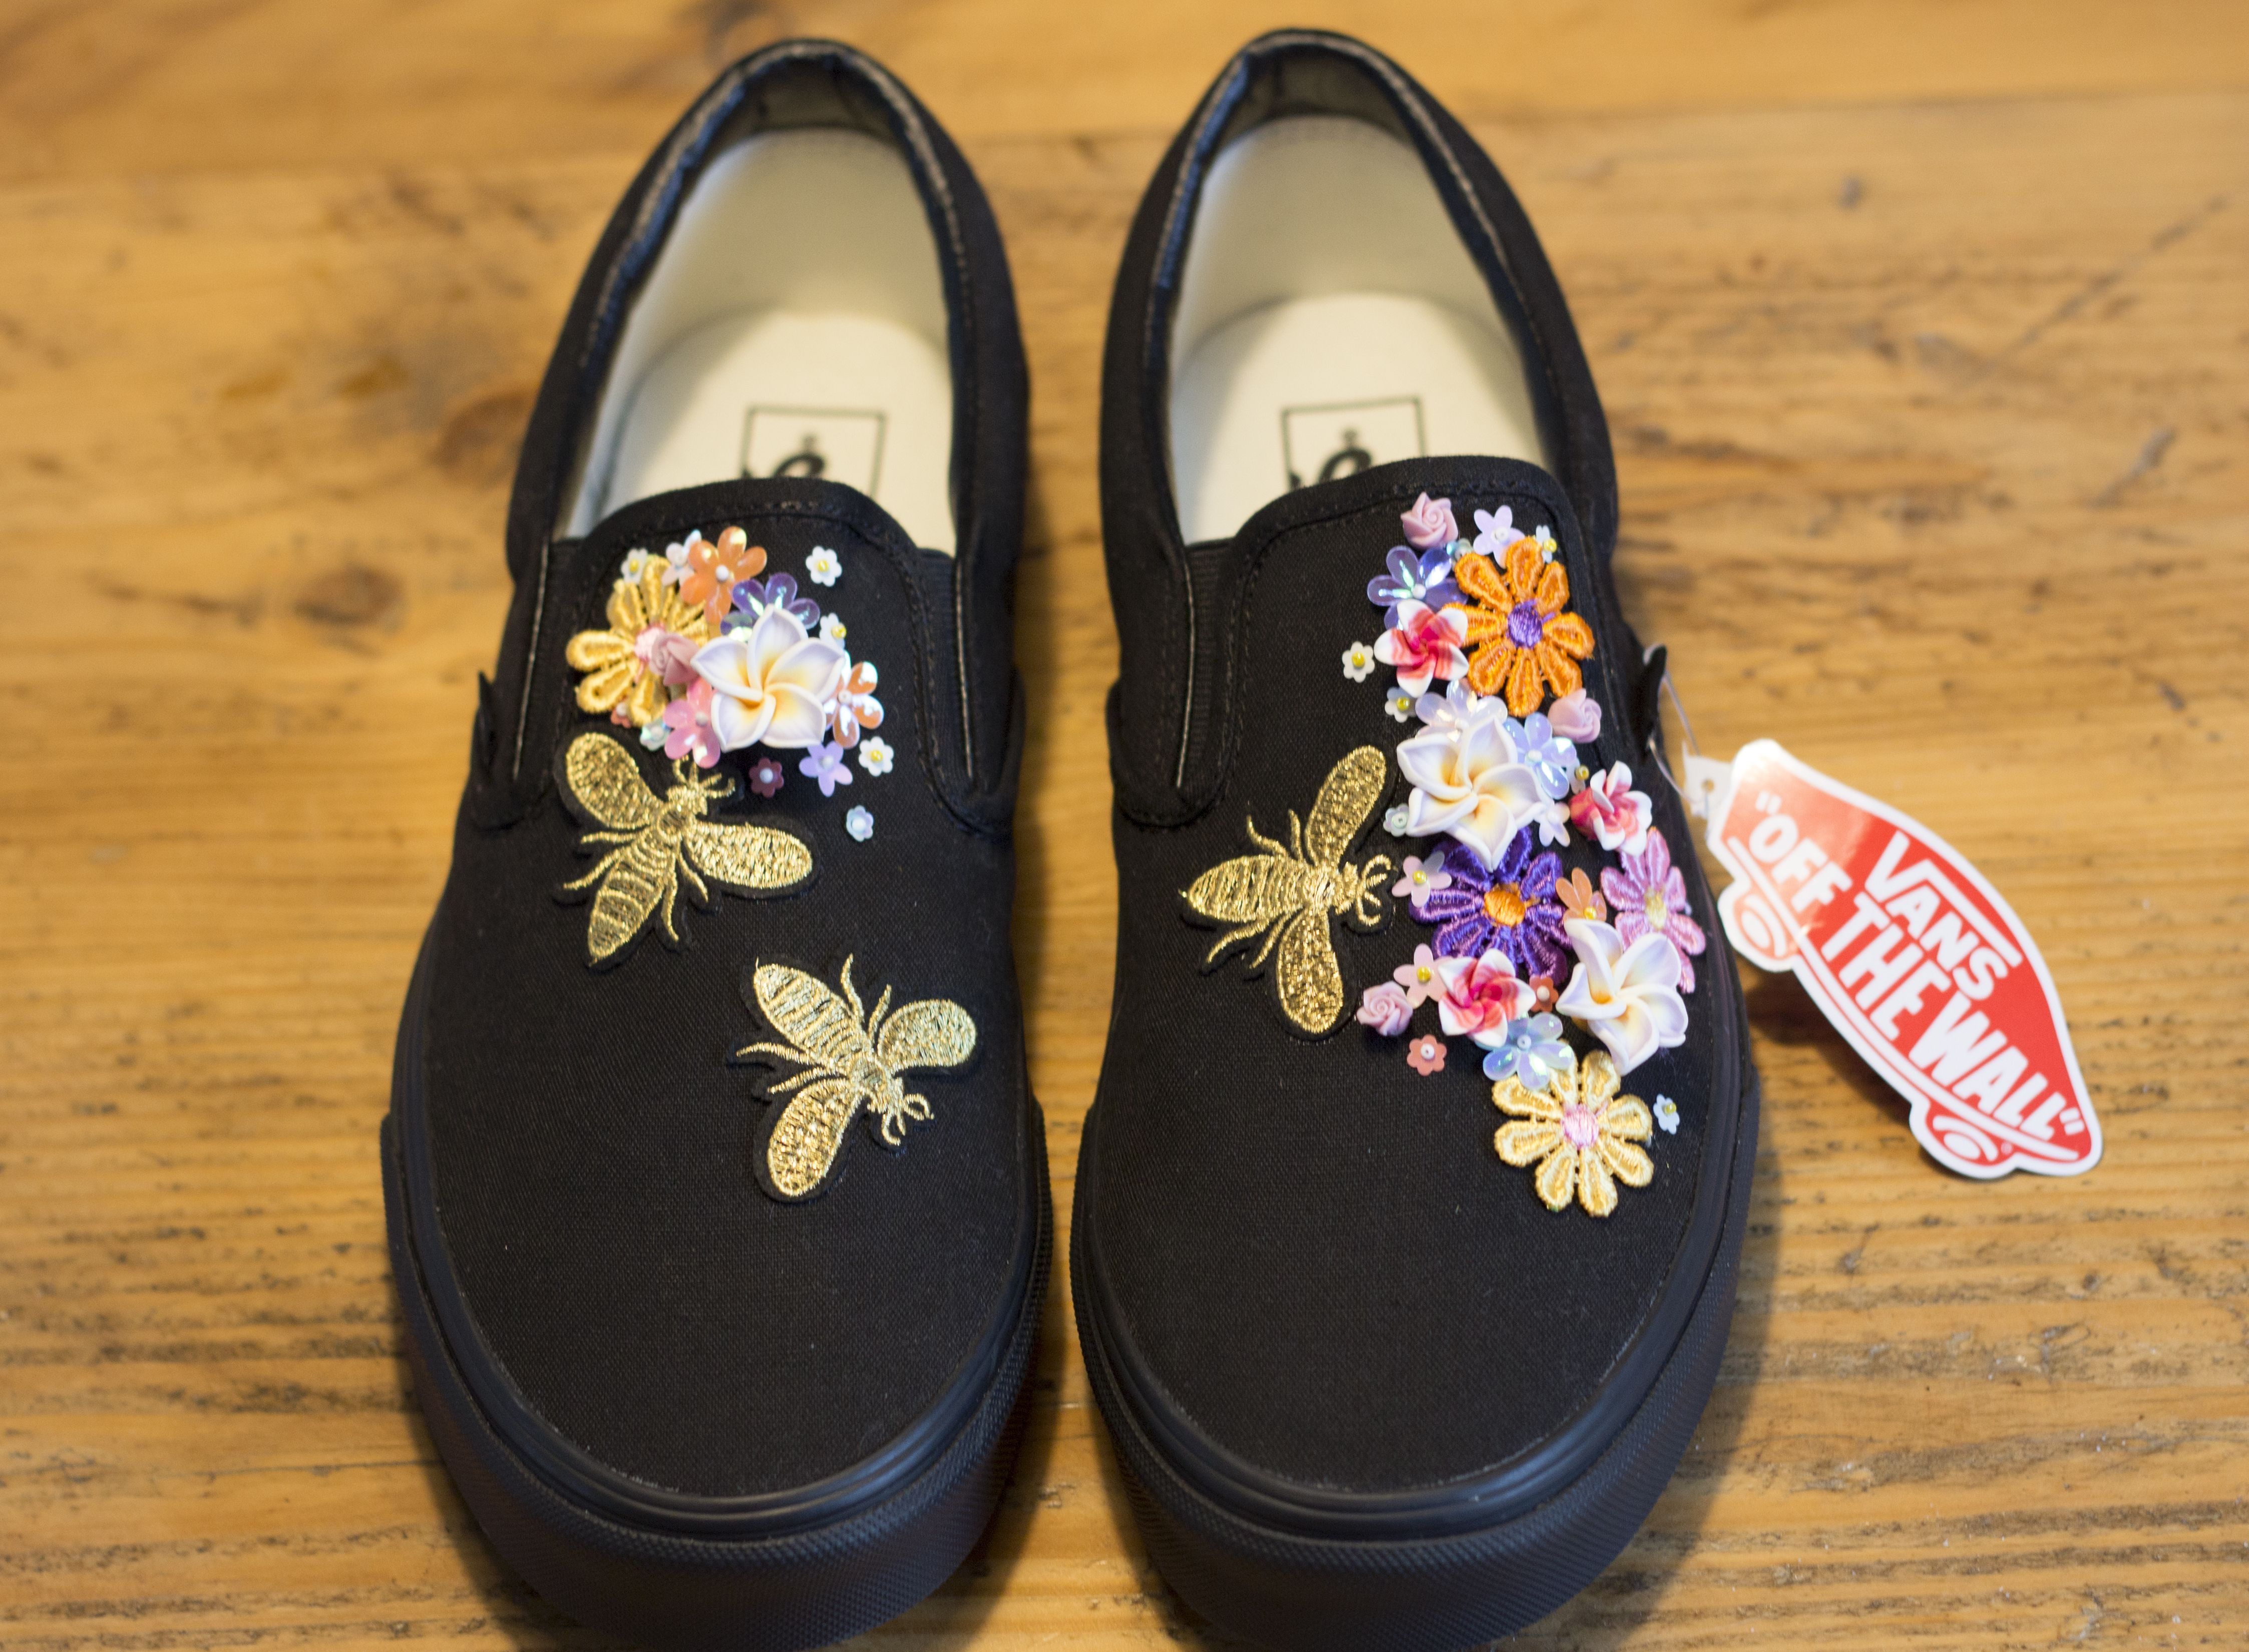 BEES KNEES, Black slip on Vans with bees and sequin flowers